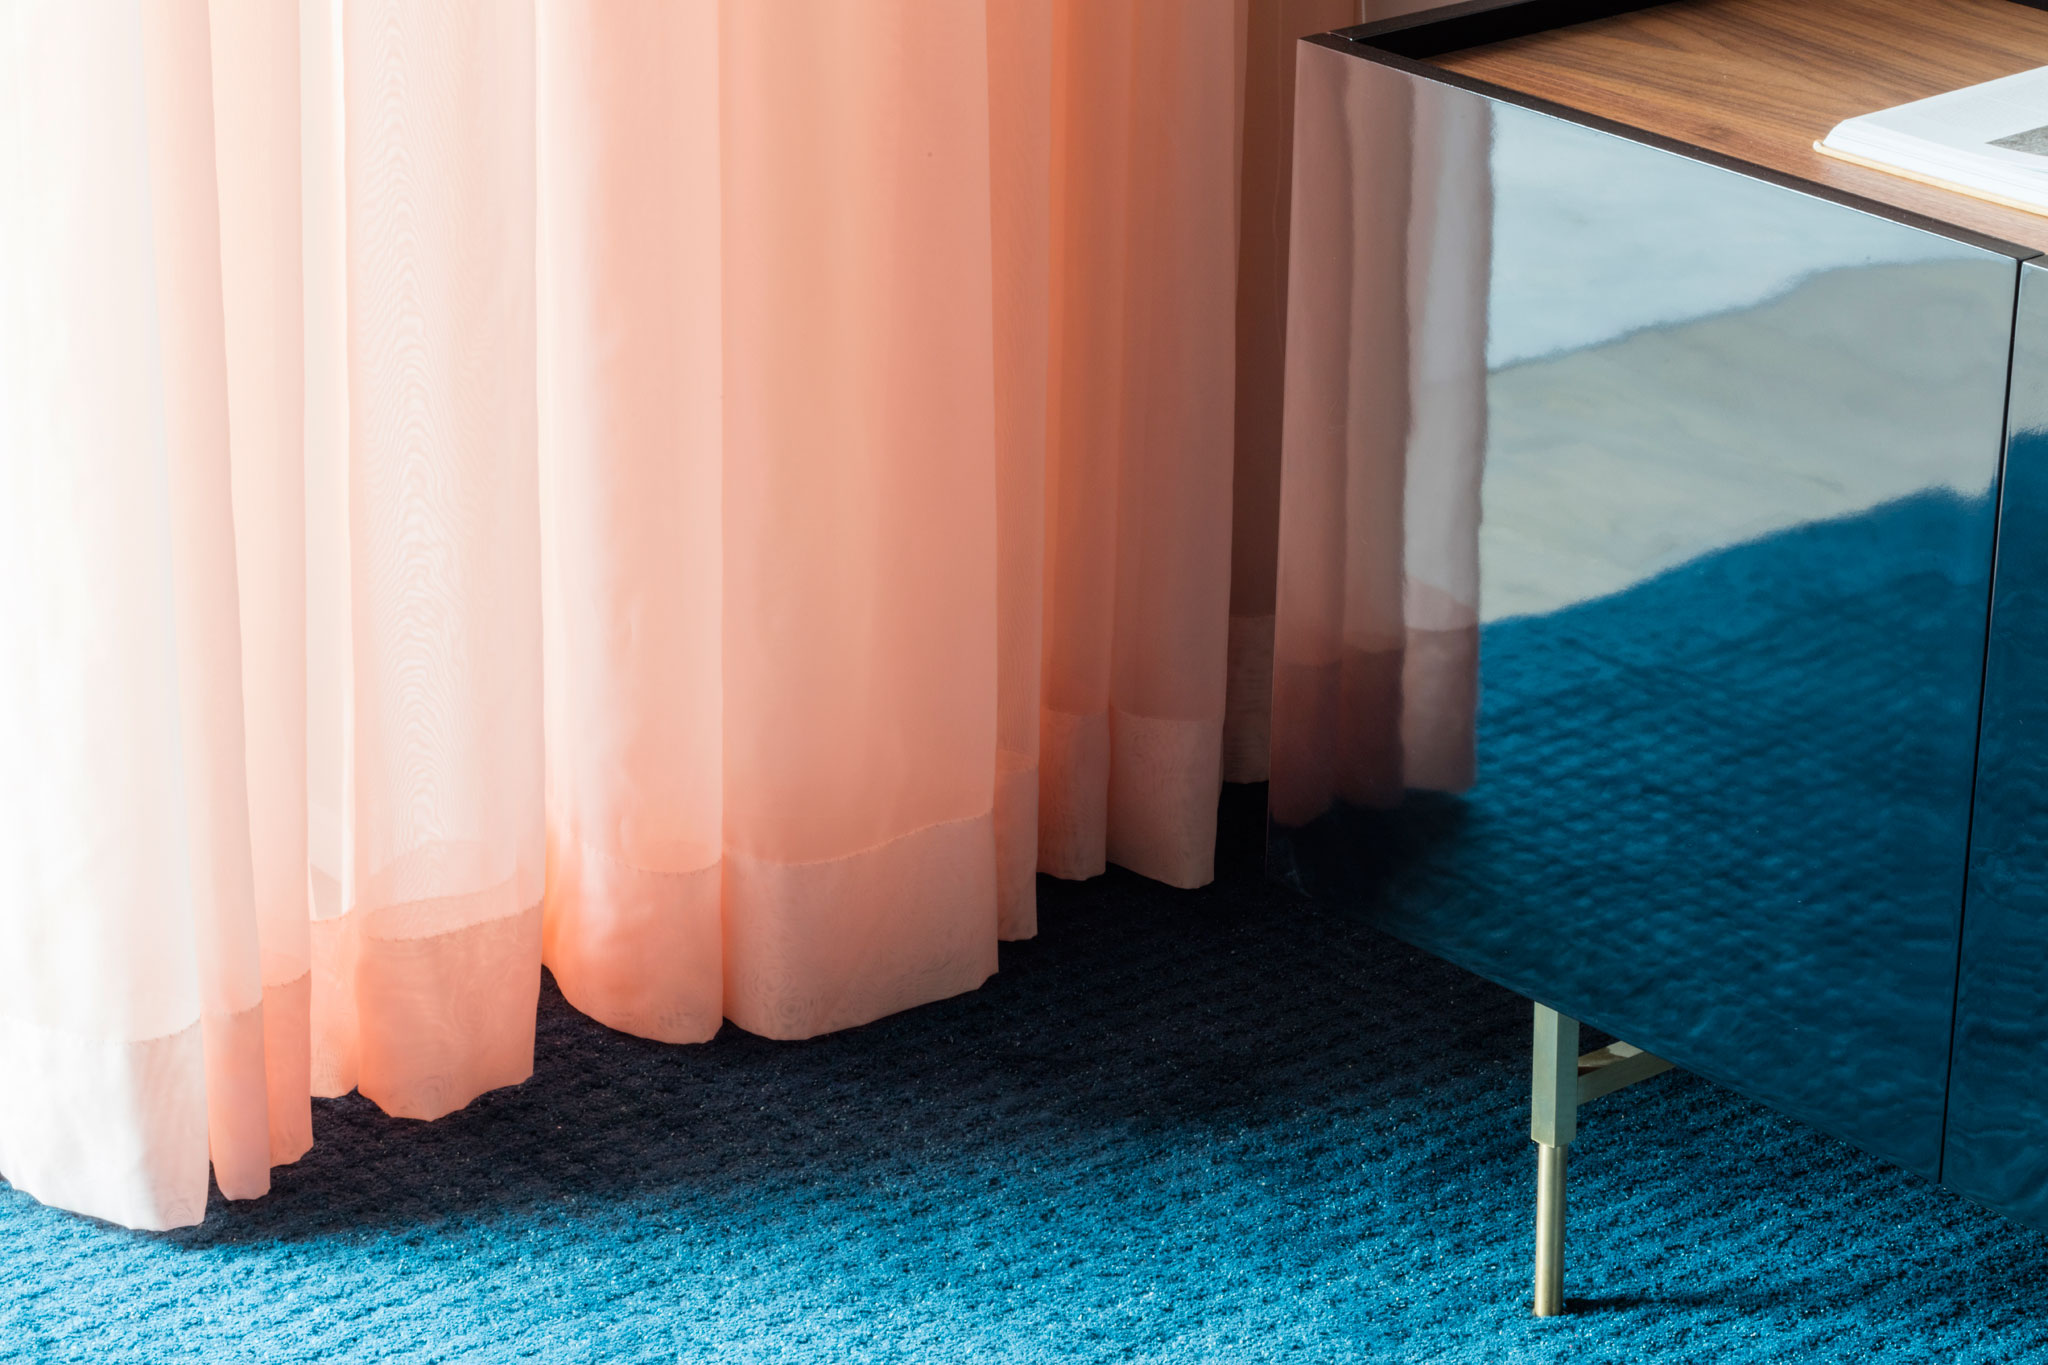 'Core' by Kasthall shown in colour Peacock. Handtufted in worsted wool and linen, the wool gives a velvety finish while the linen creates a sense of aged patina. | Image courtesy of Kasthall.